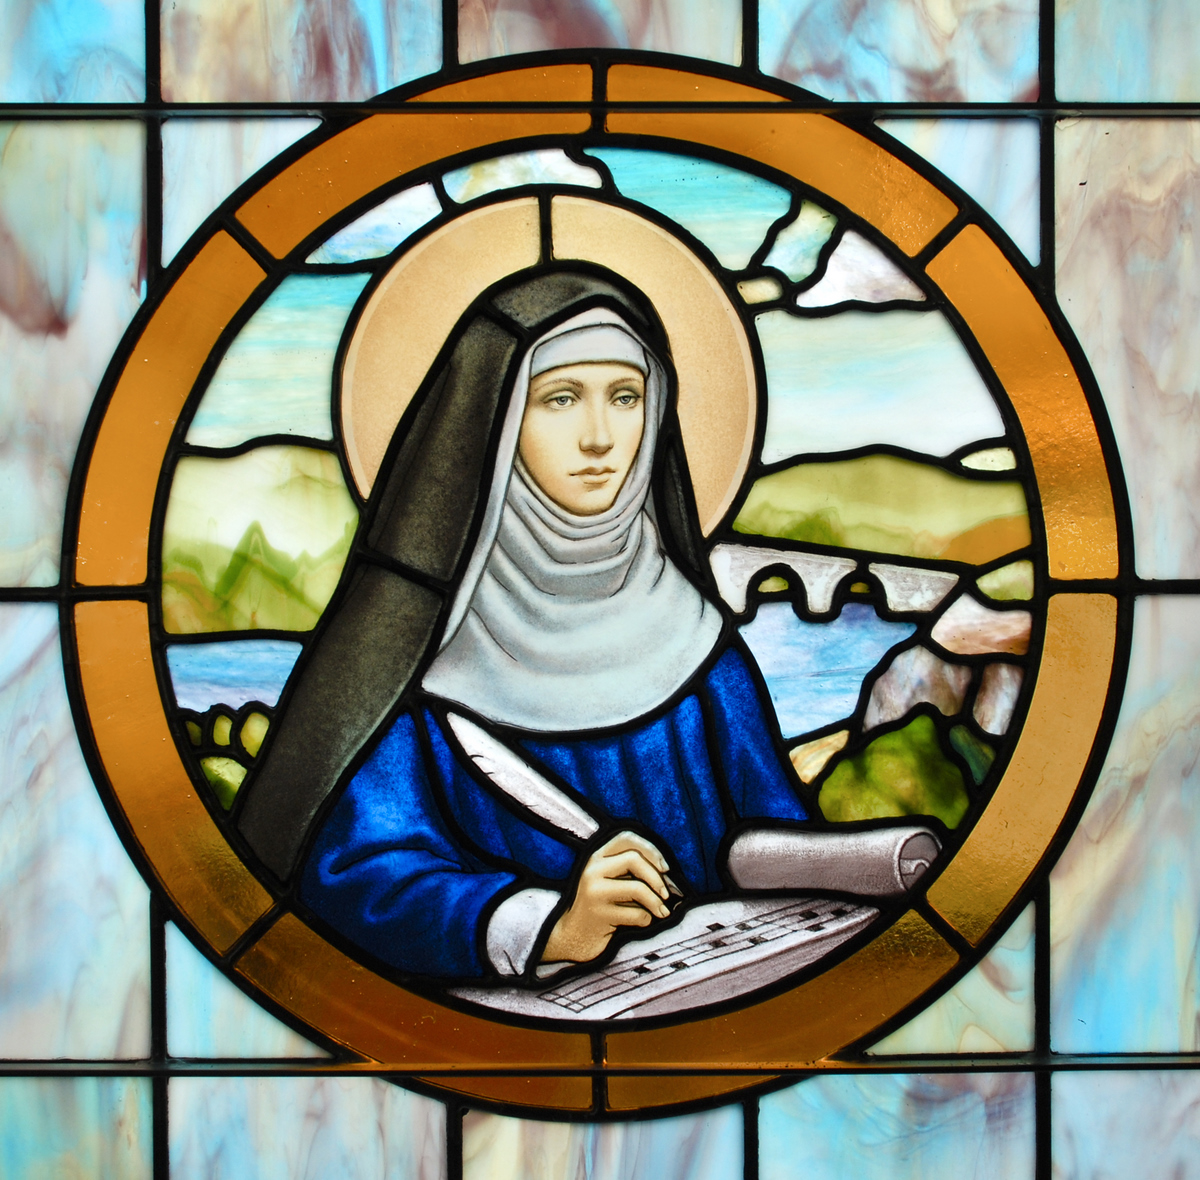 the life of hildegard von bingen Description ordo virtutum (order of the virtues) is an allegorical morality play composed about 1151 by hildegard von bingen the story tells about soul who, after.